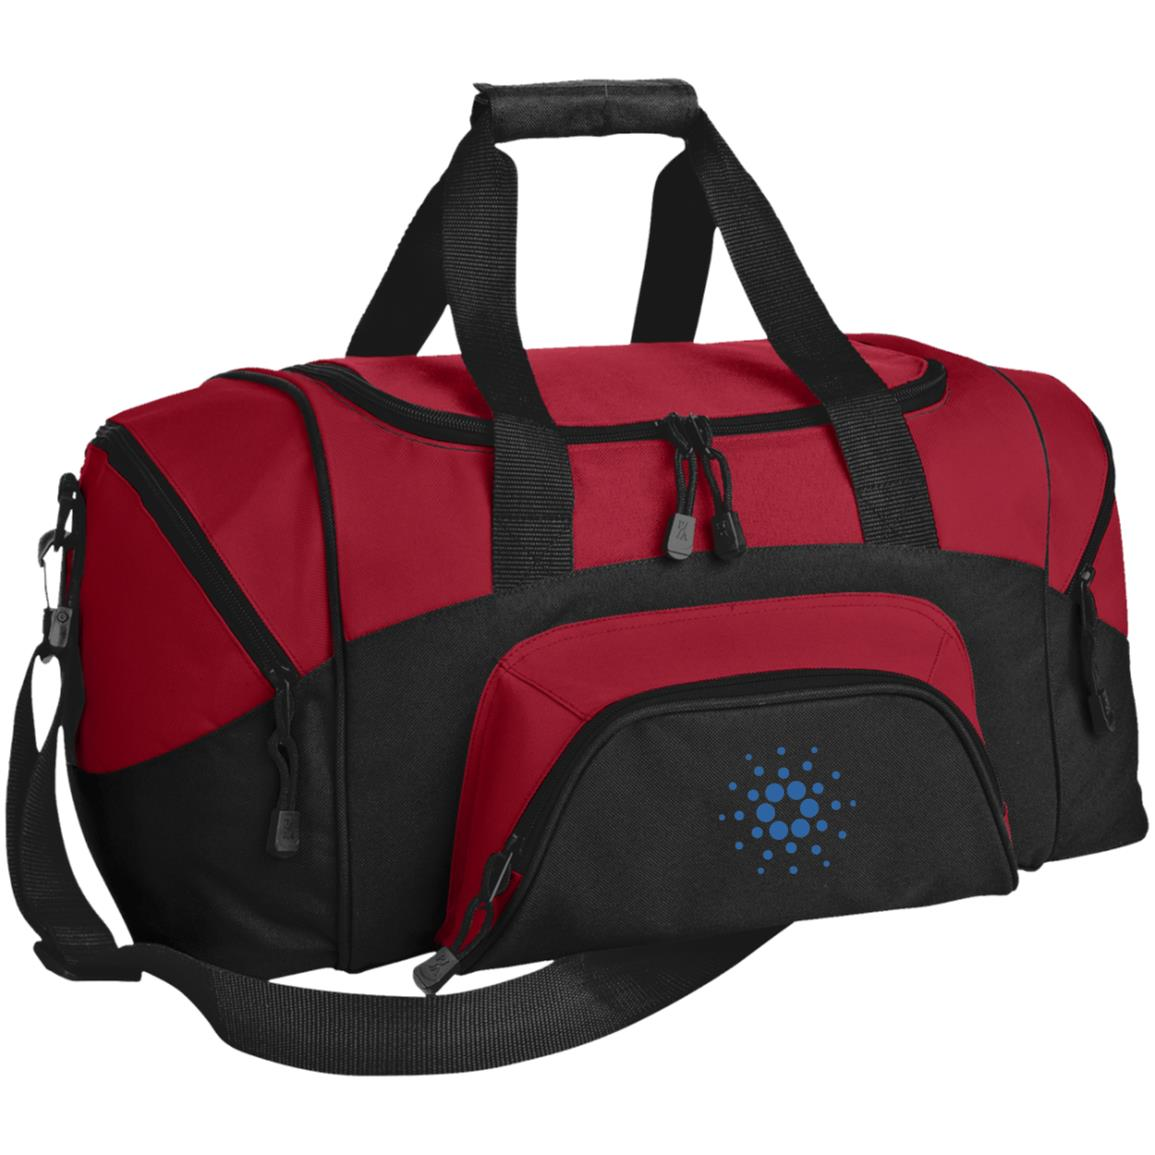 Cardano Small Colorblock Sport Duffel Bag